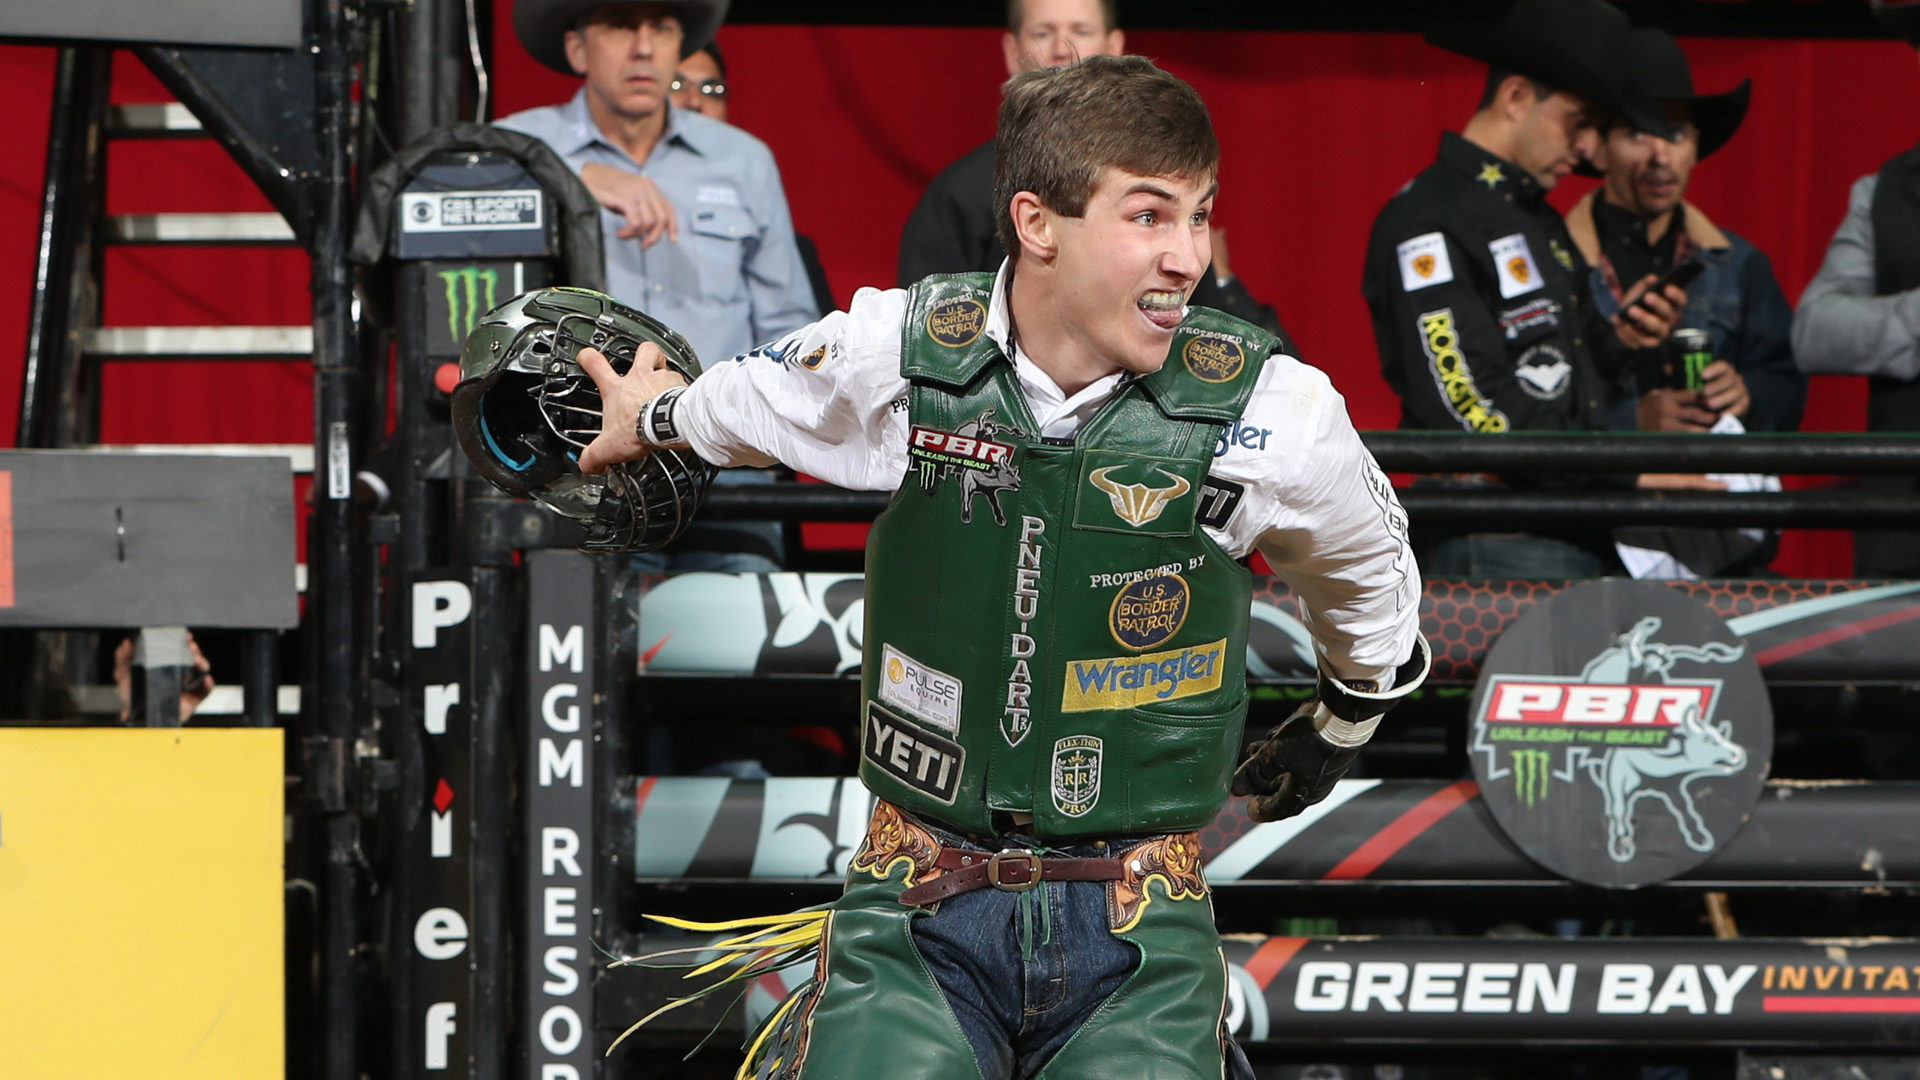 Lockwood comes up short in Green Bay, but still gains 400 points in world title race